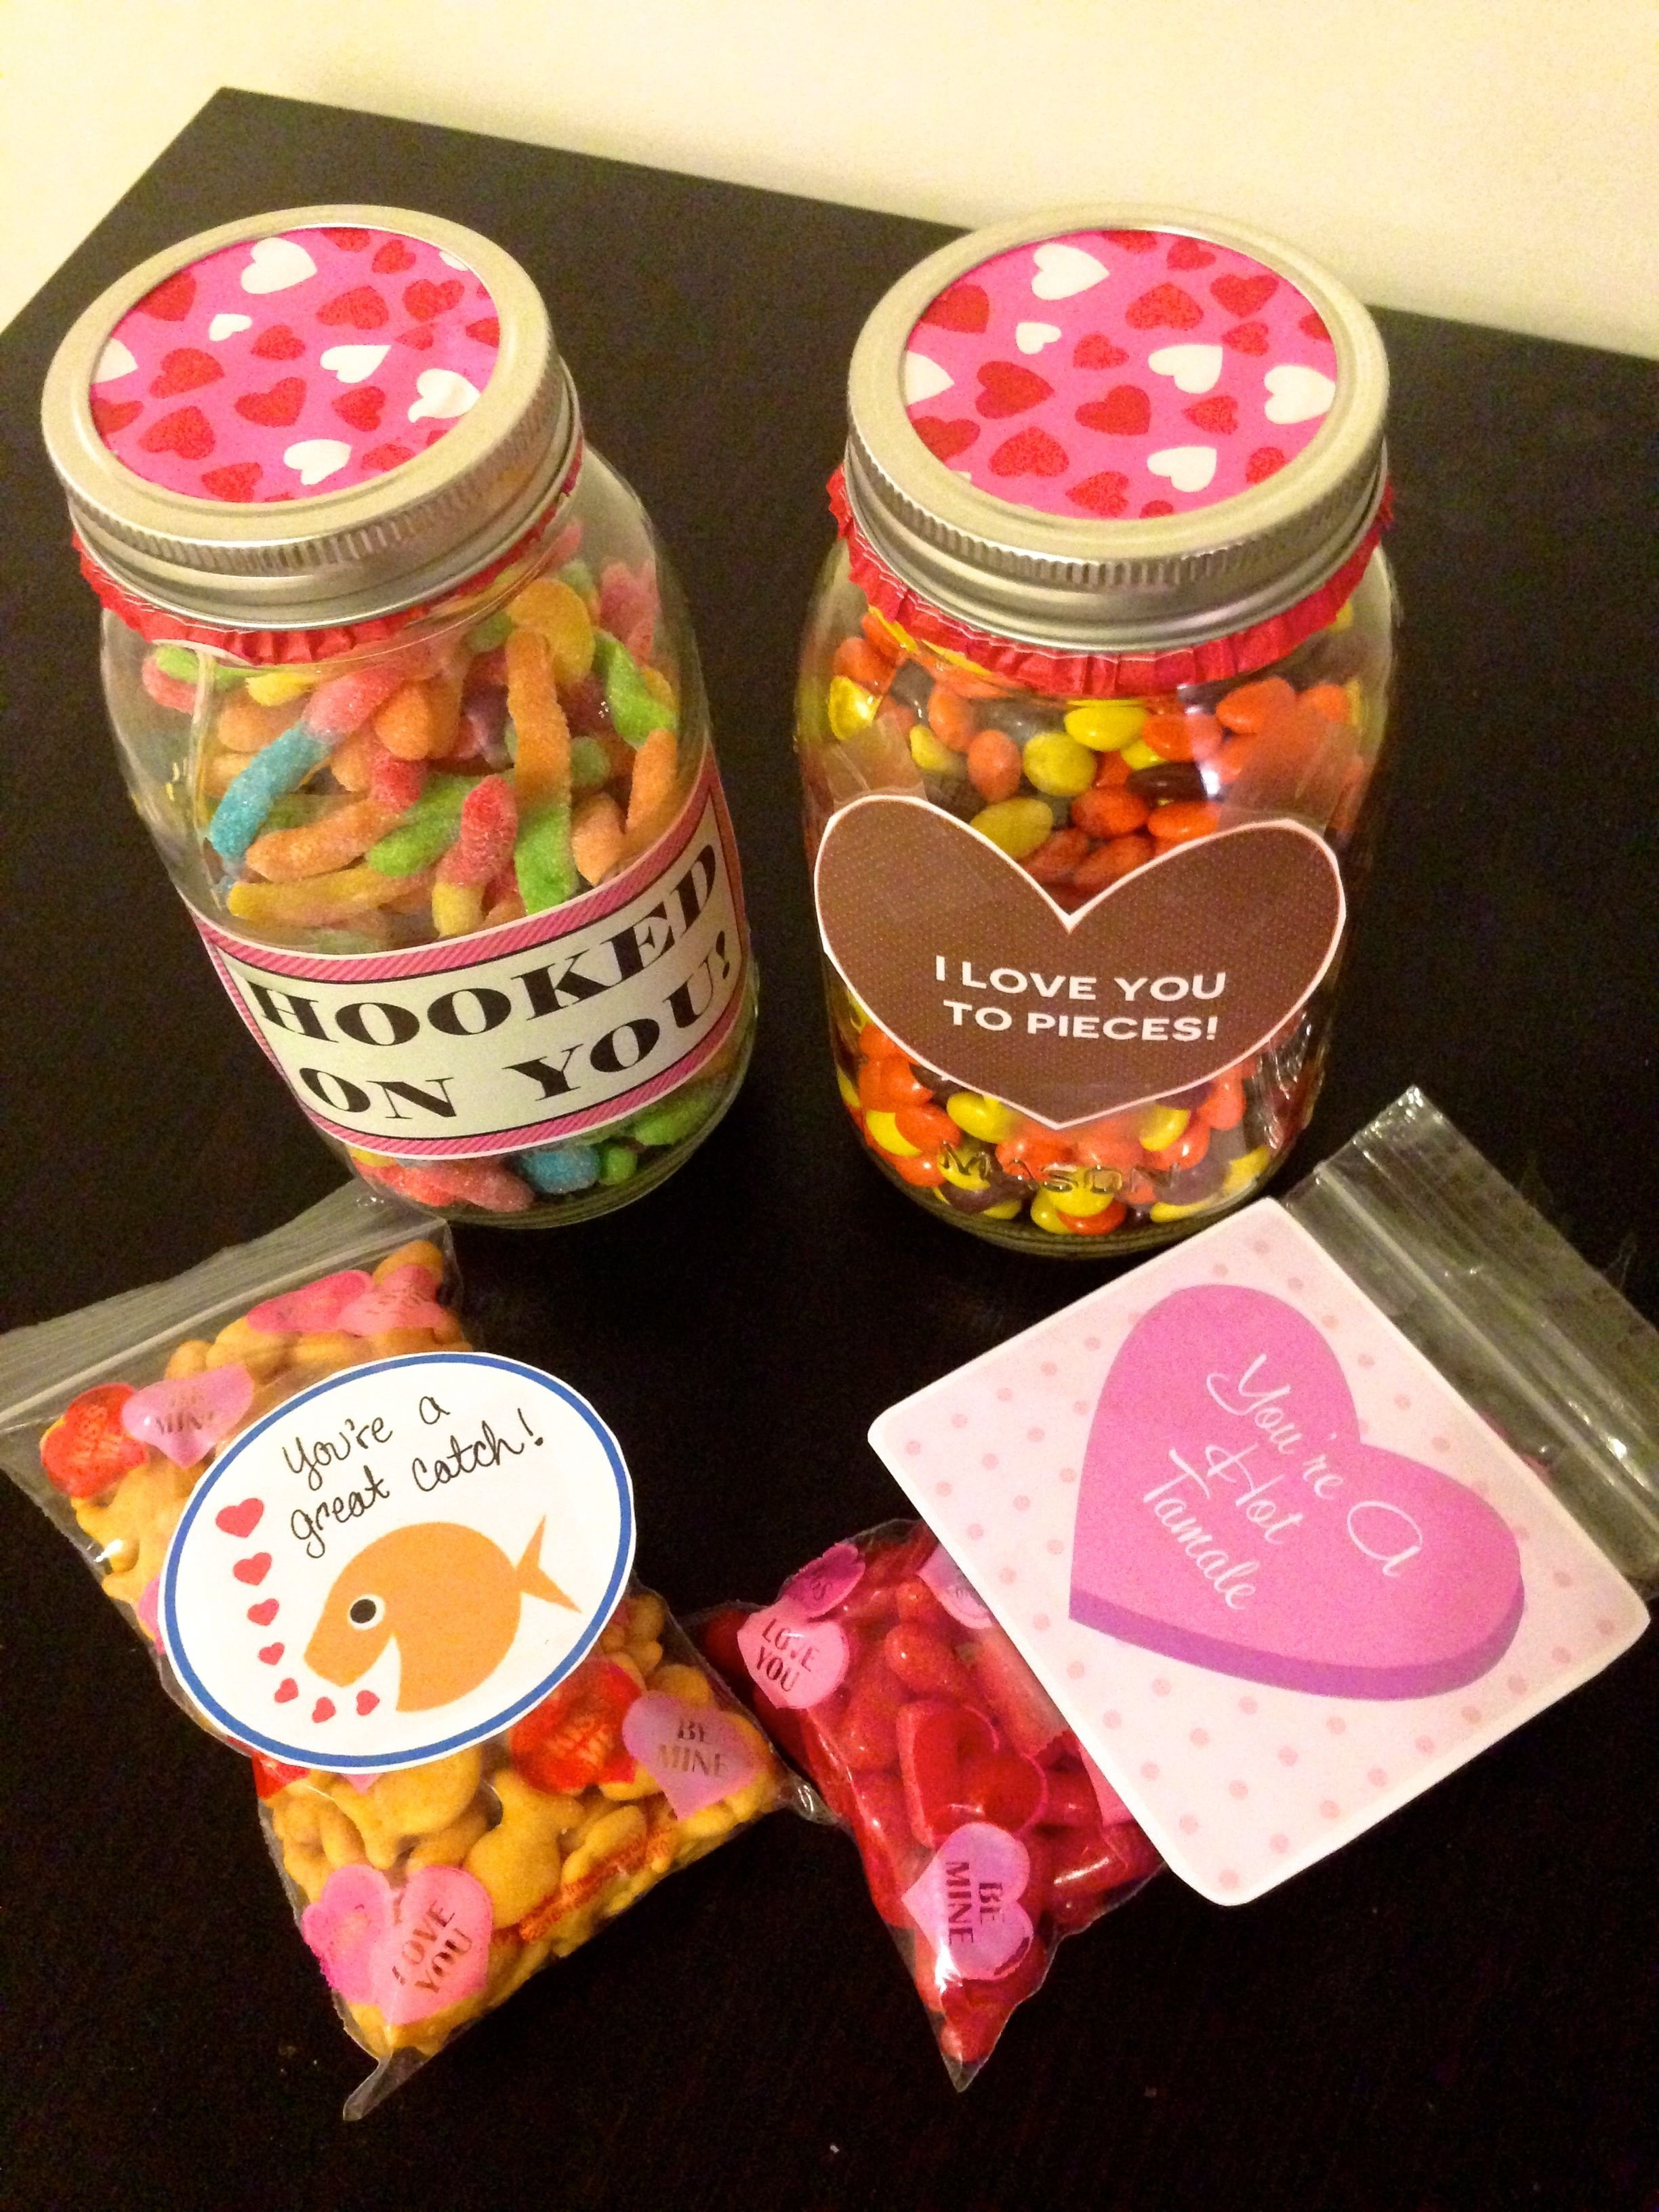 10 Famous Valentines For Him Gift Ideas romantic gift idea for him on a budget budgeting honey and romantic 1 2020